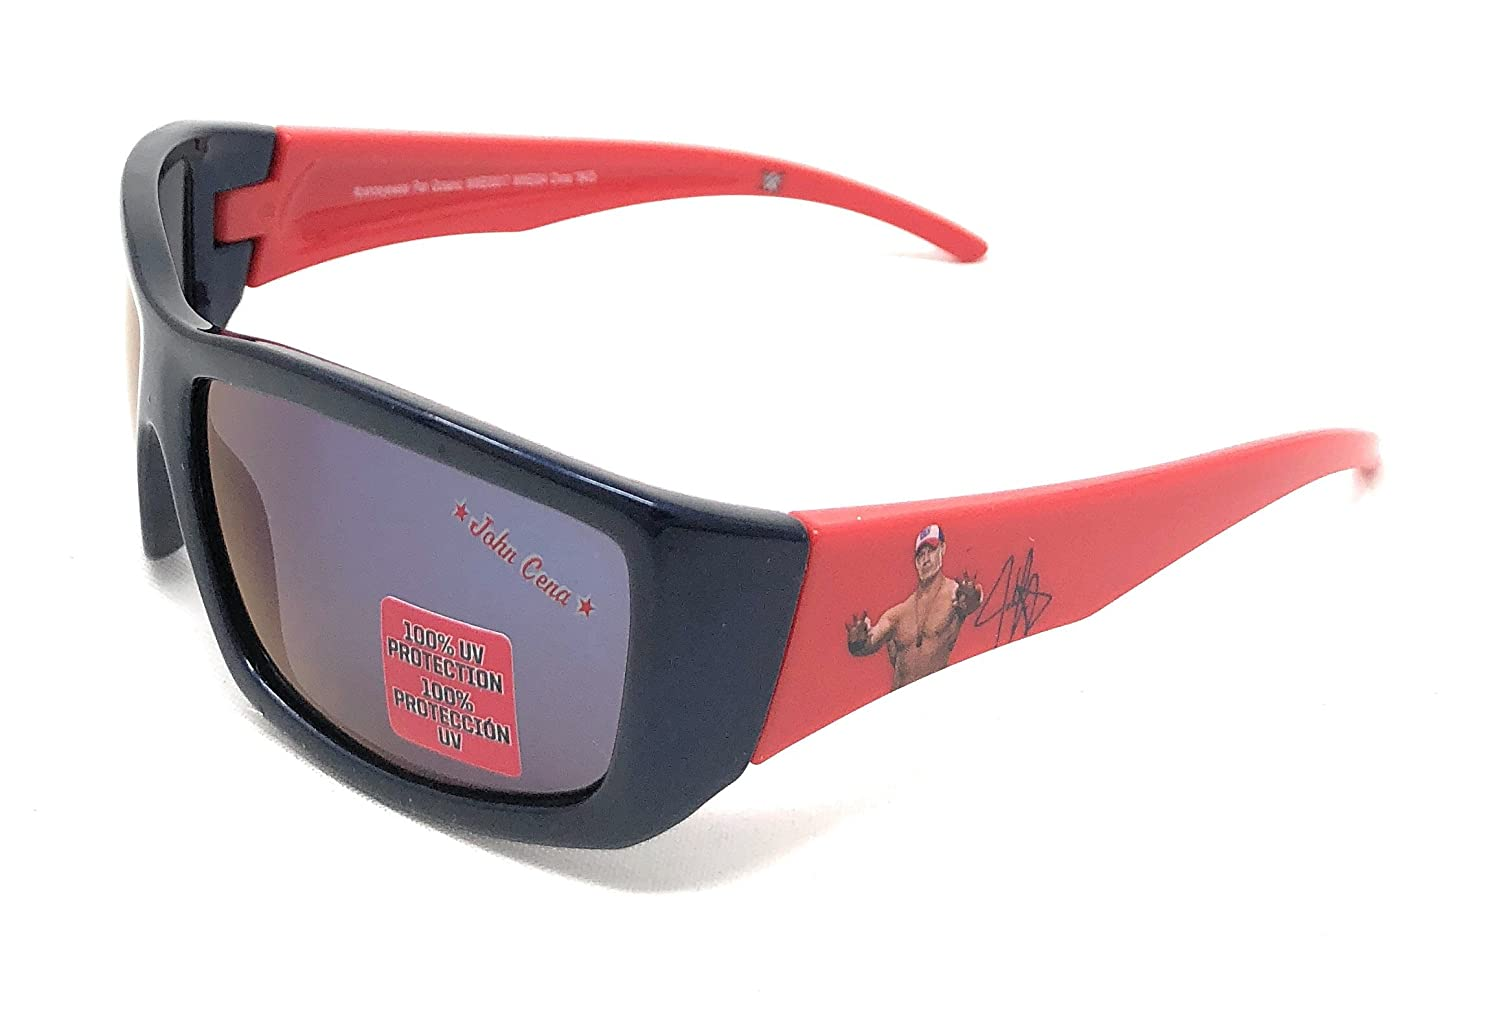 WWE John Cena Boy's Sunglasses in Black and Red - 100% UV Protection